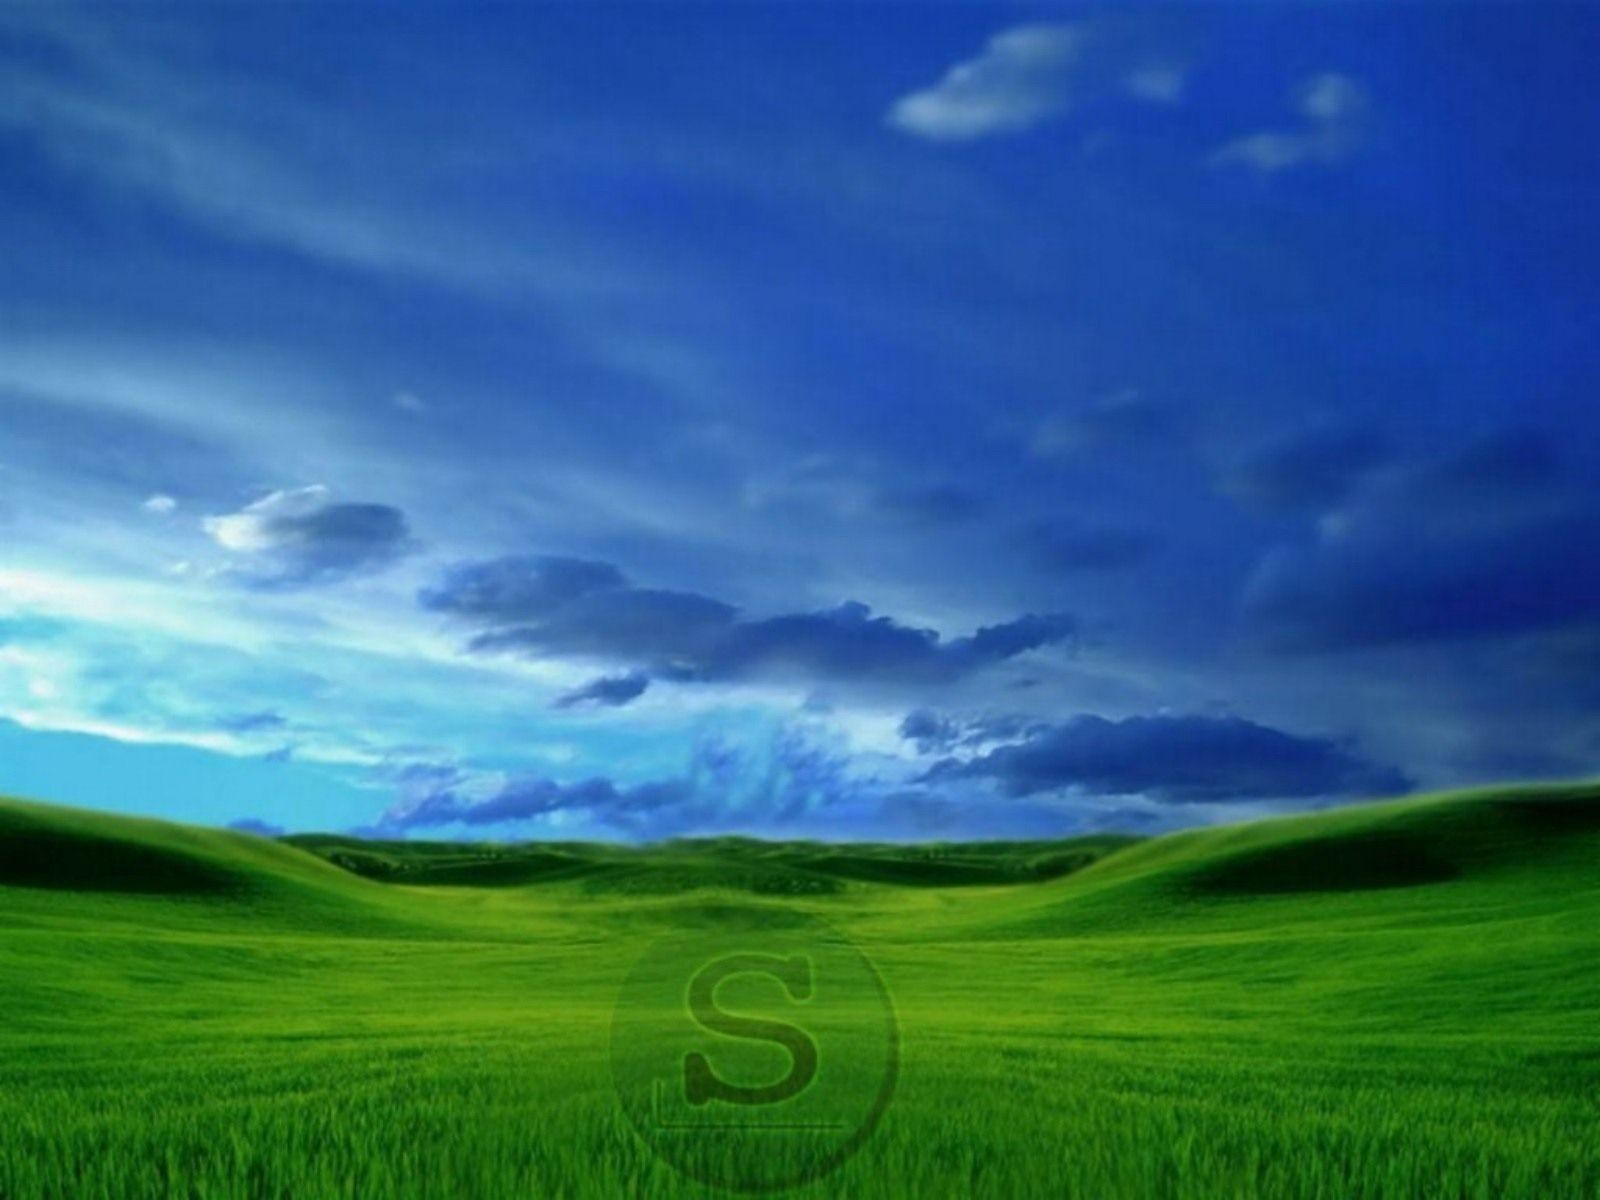 Slackware Xp Wallpaper Desktop Windows Xp Lile Slack Background ...